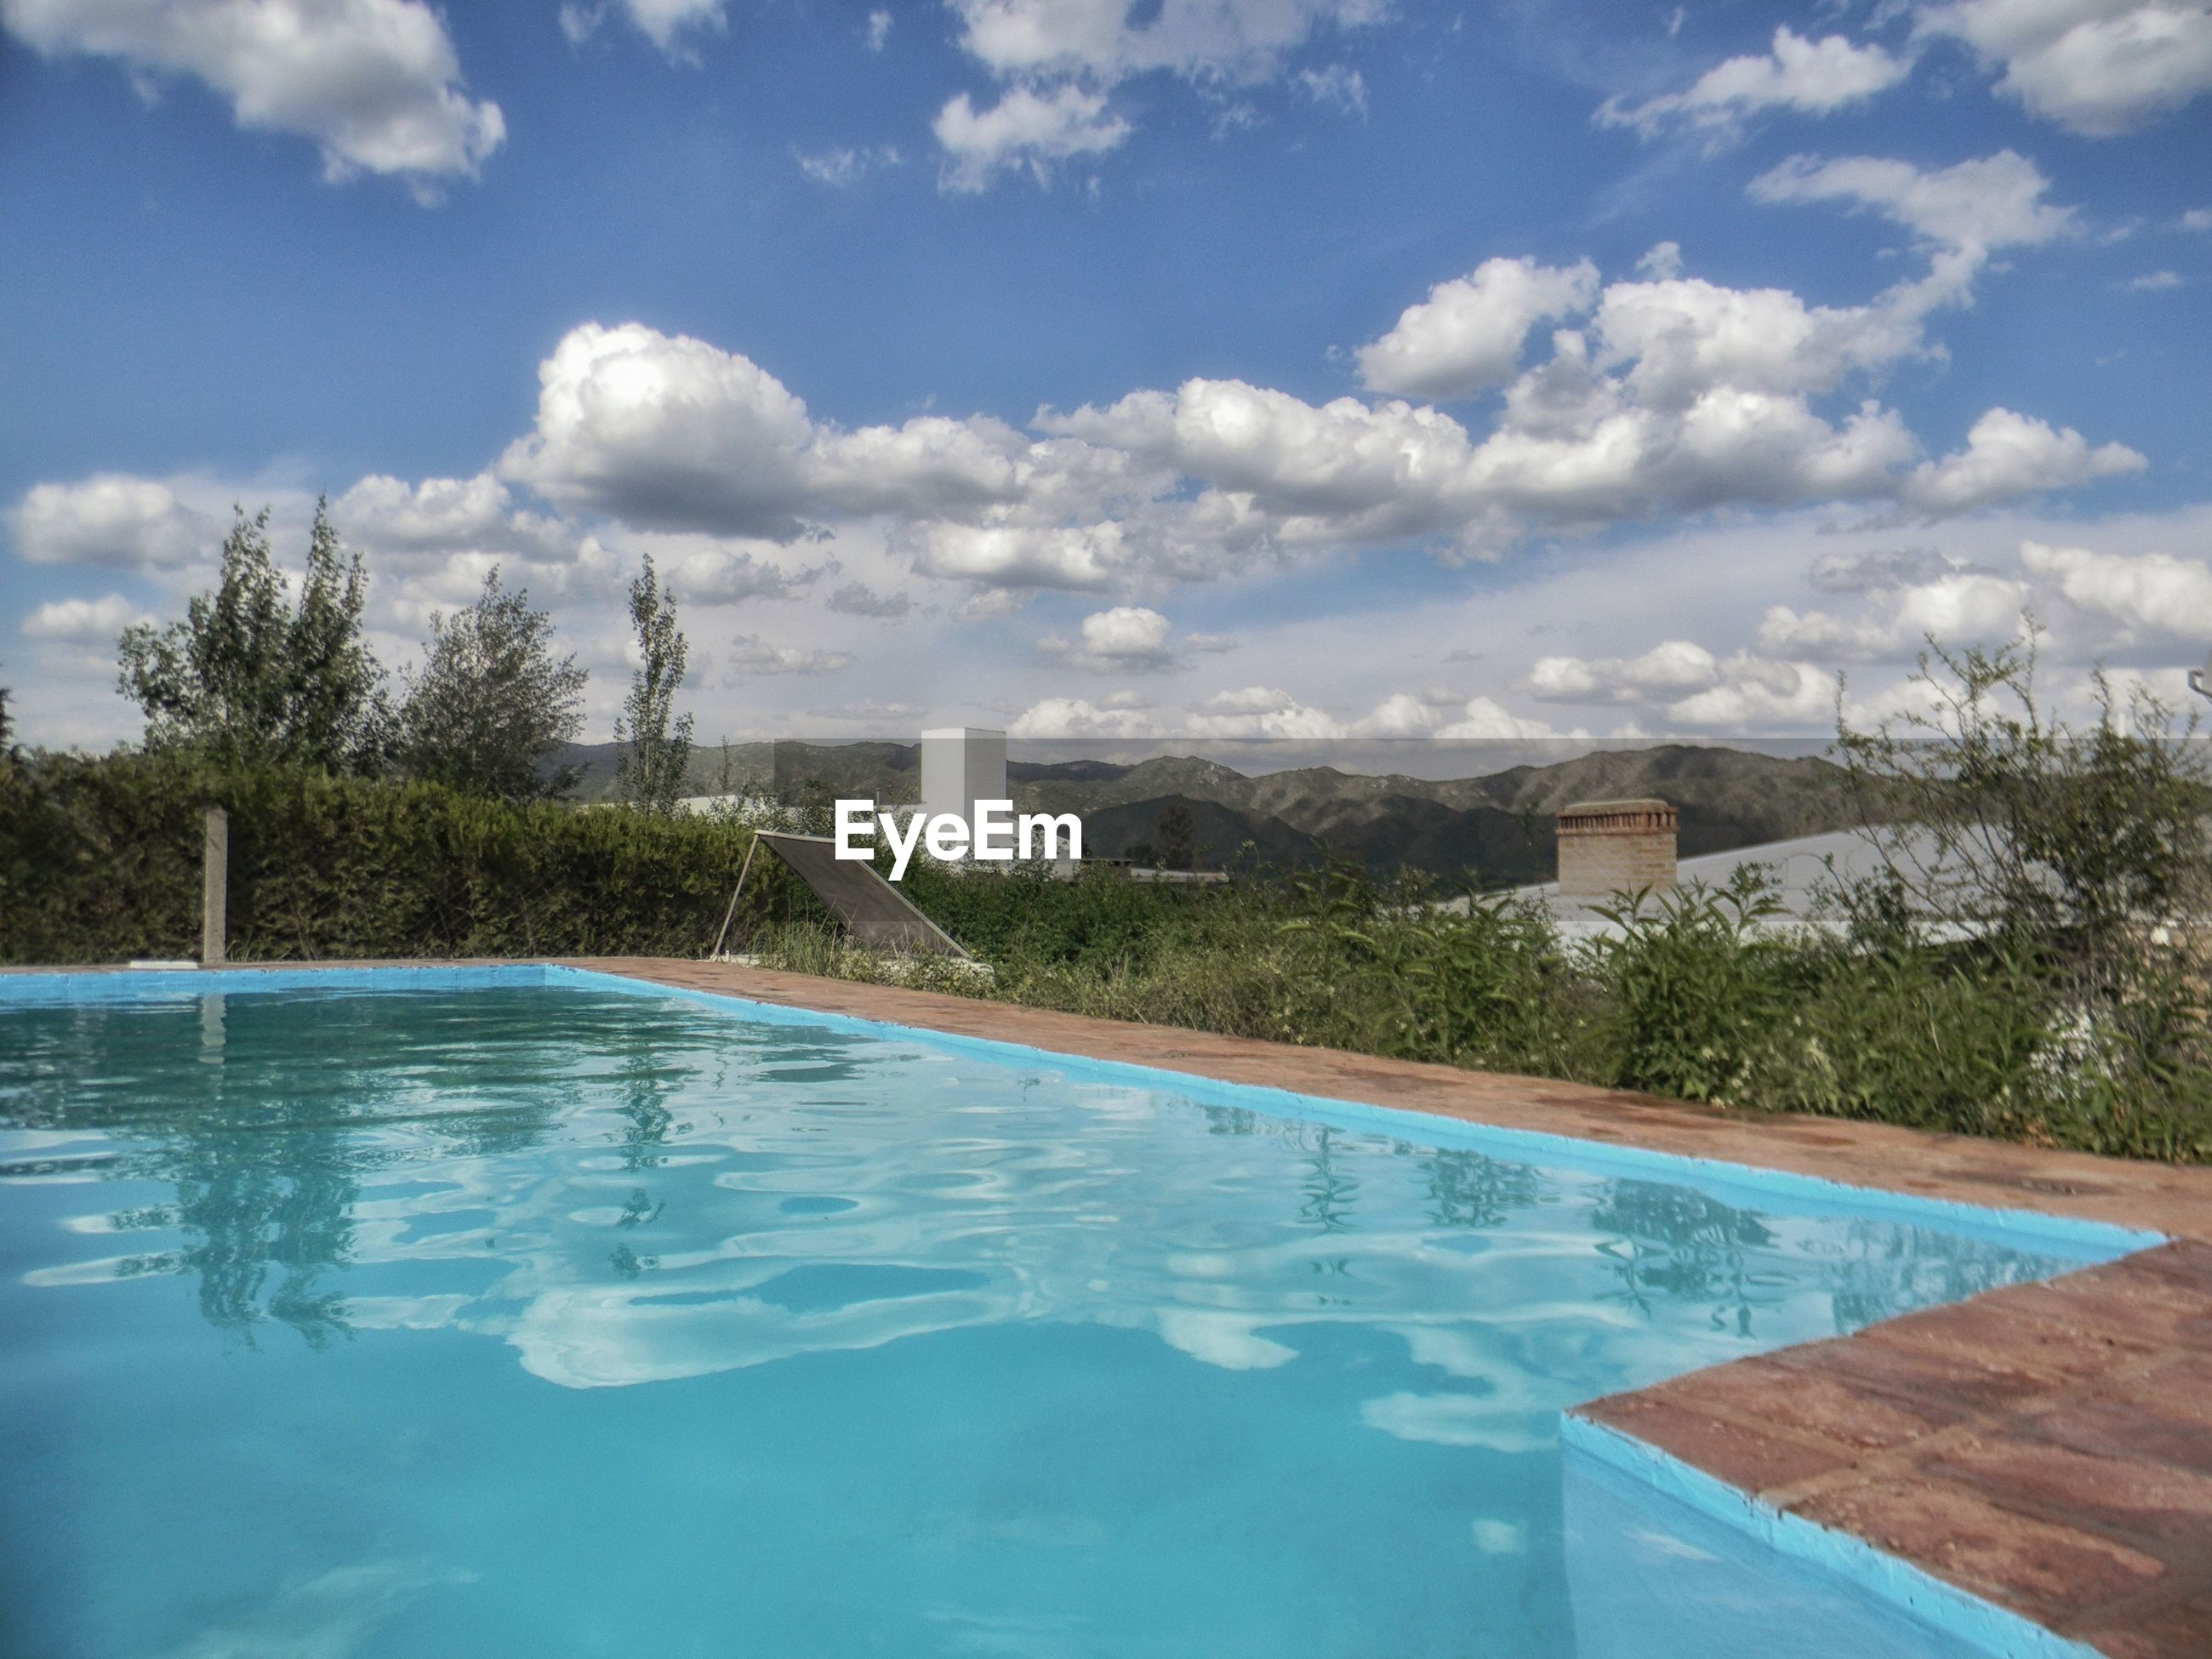 VIEW OF SWIMMING POOL BY TREES AGAINST SKY